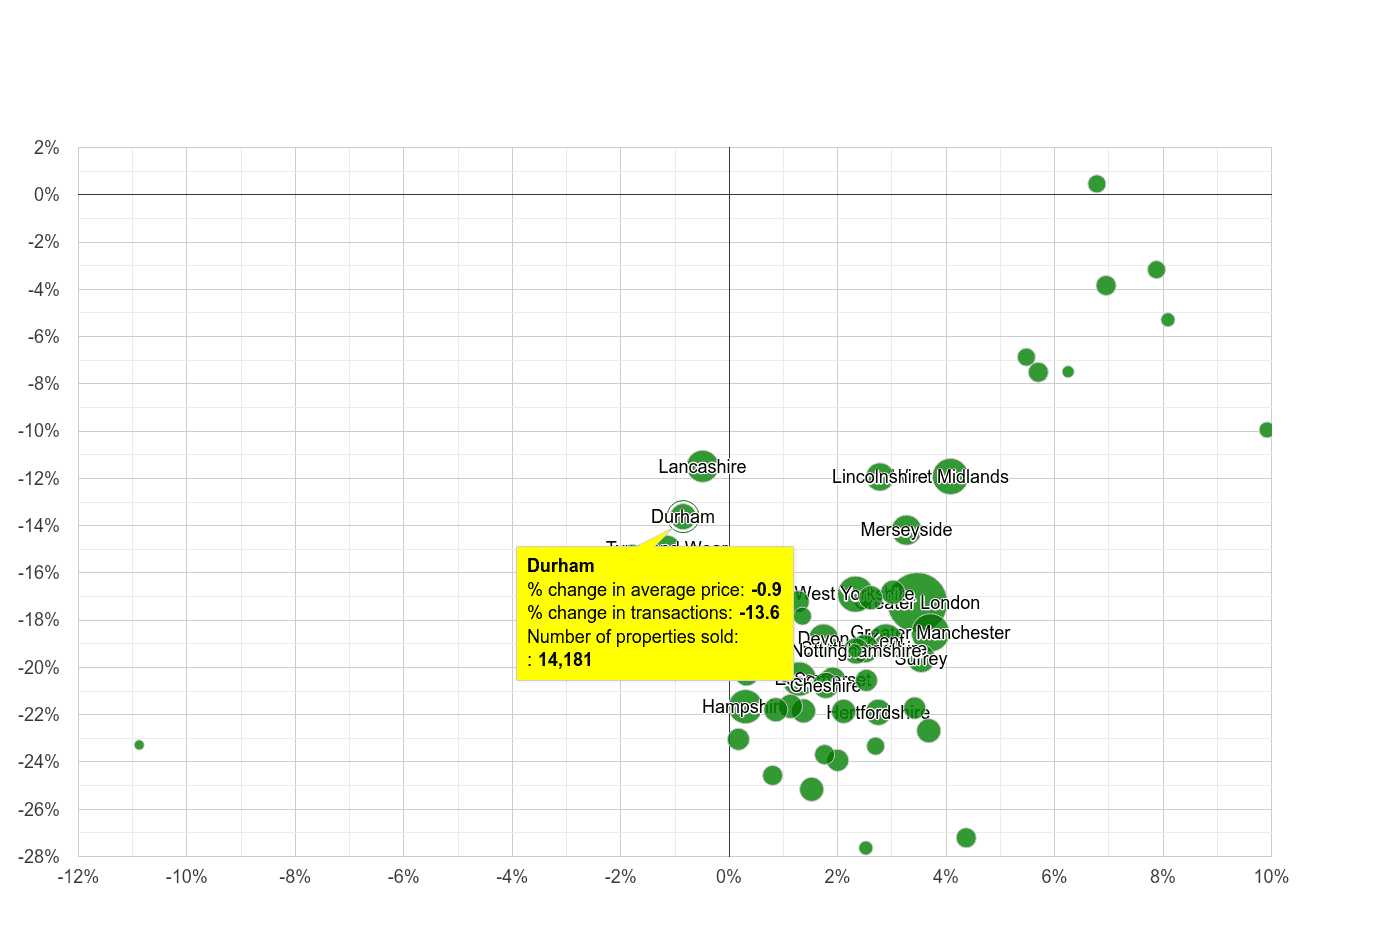 Durham county property price and sales volume change relative to other counties